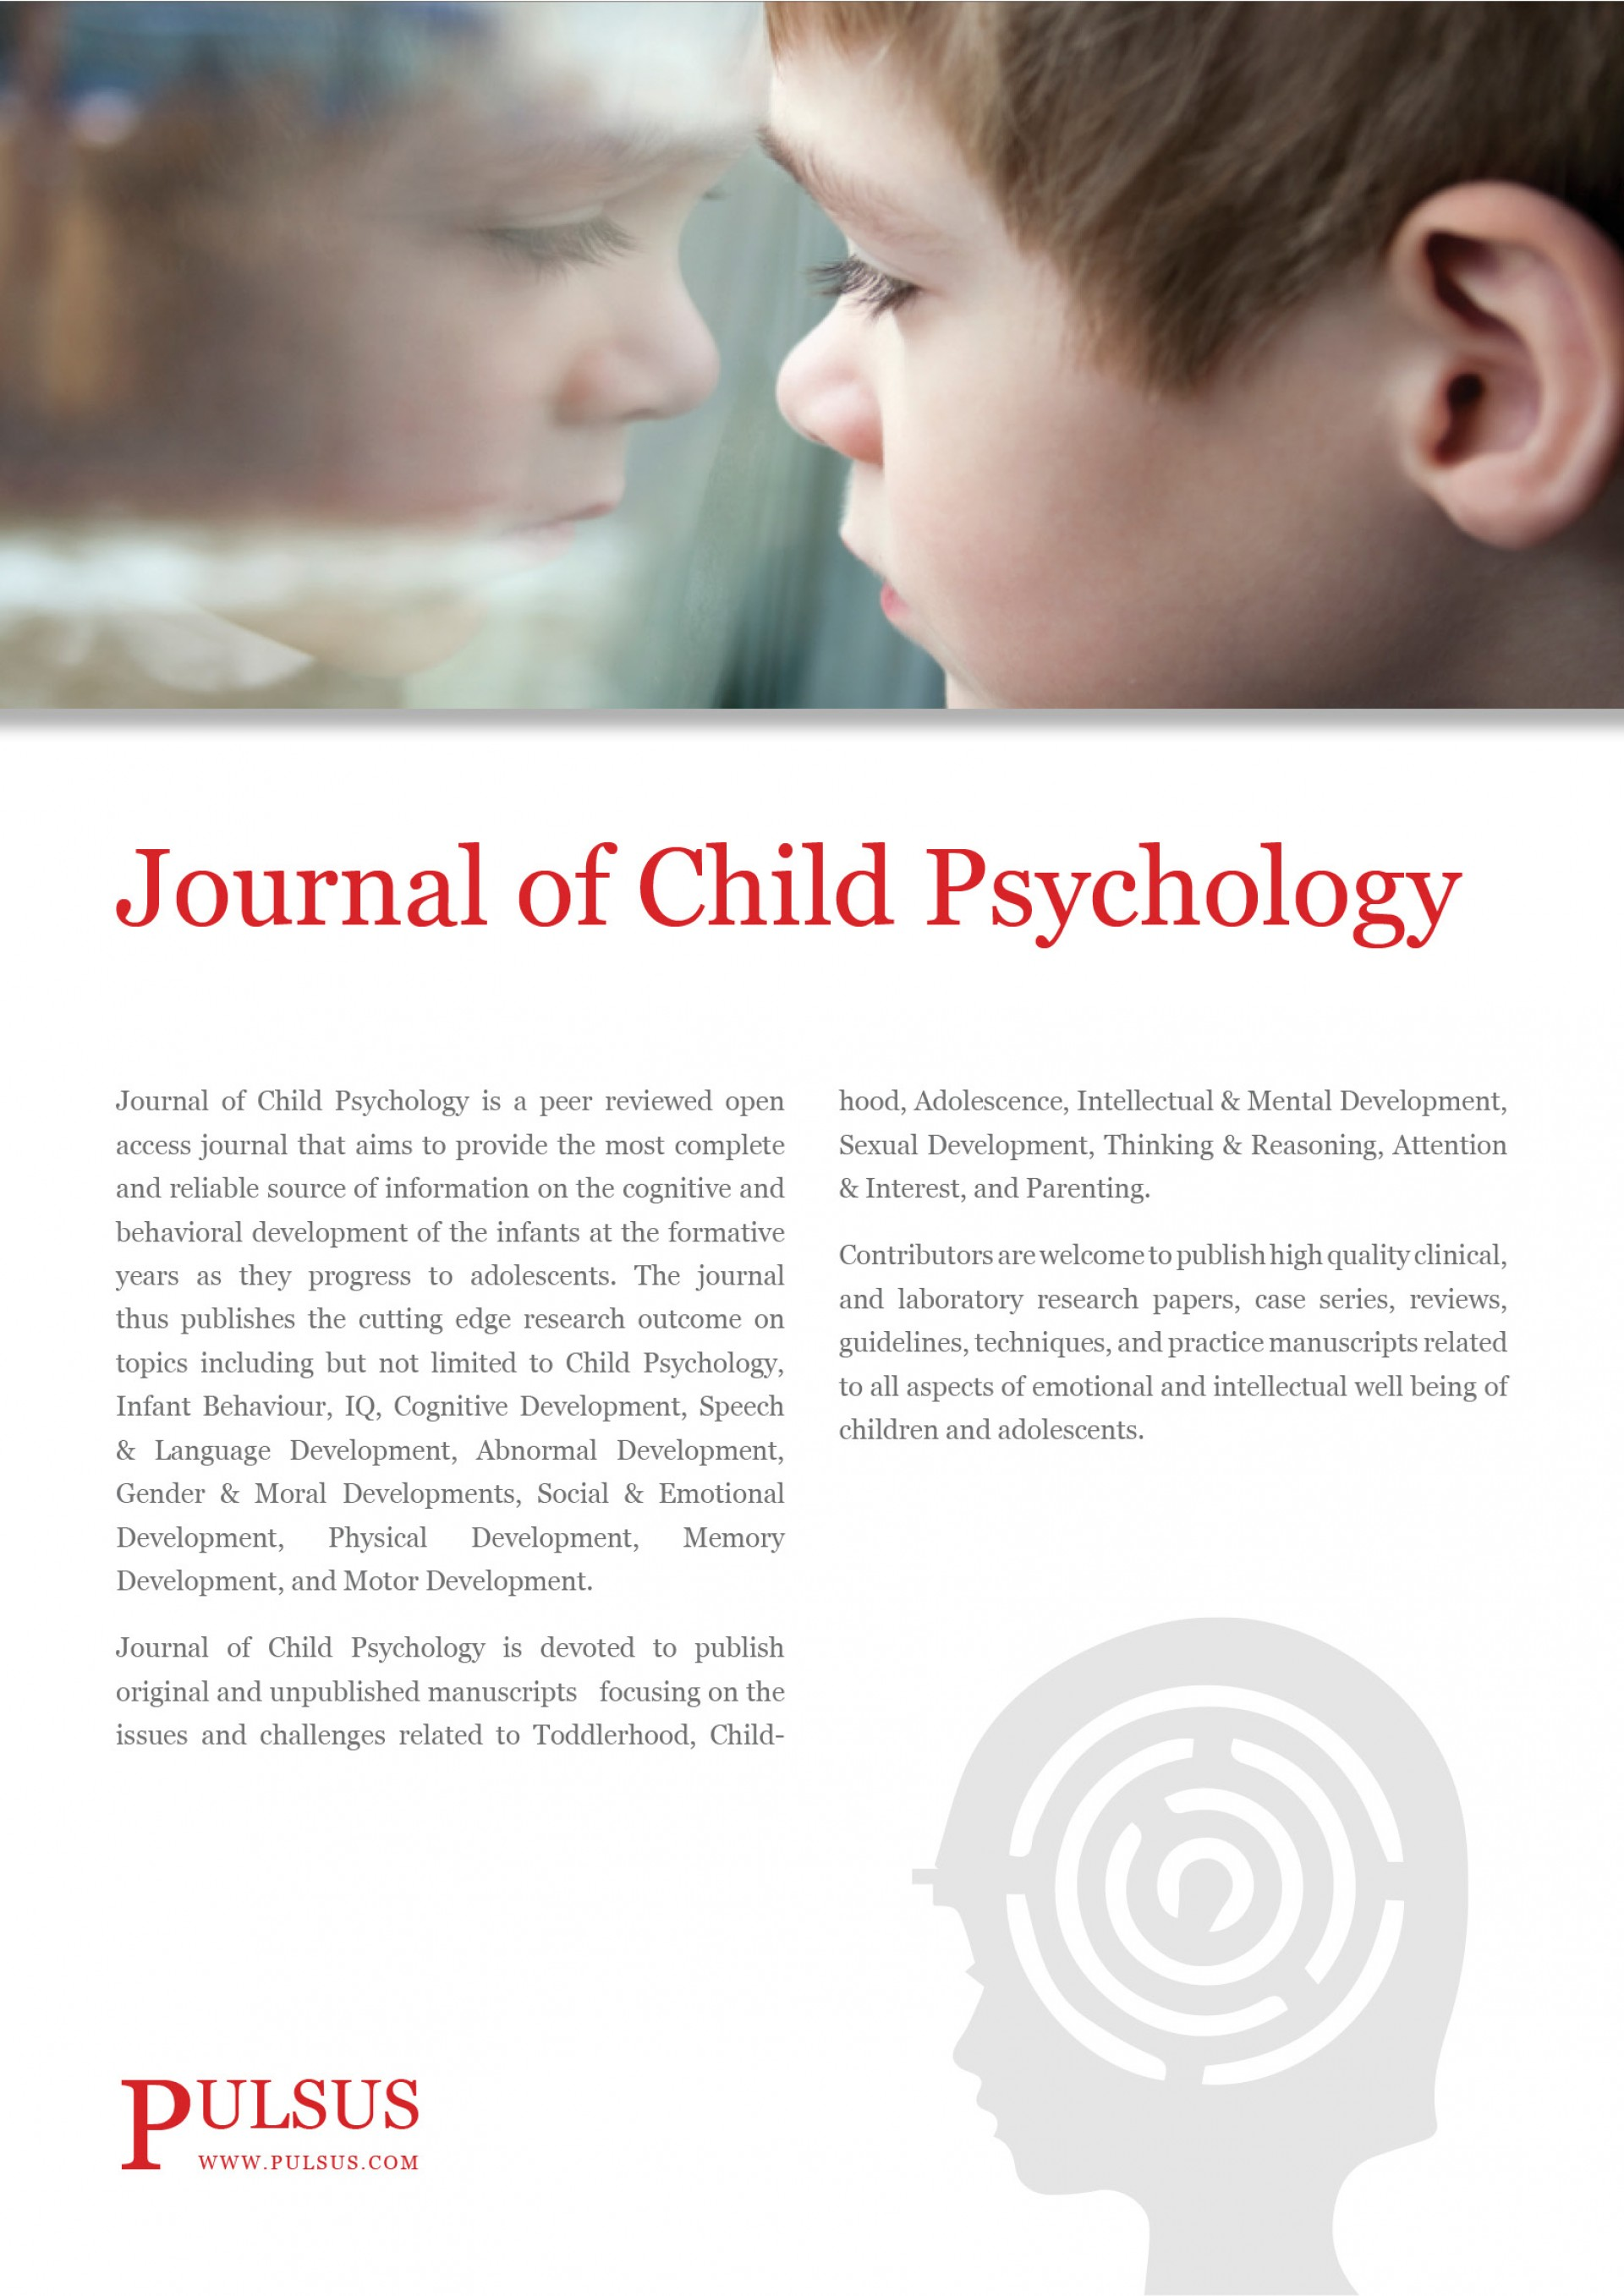 001 Journal Of Child Psychology Flyer Research Paper Articles On Wondrous Development 1920